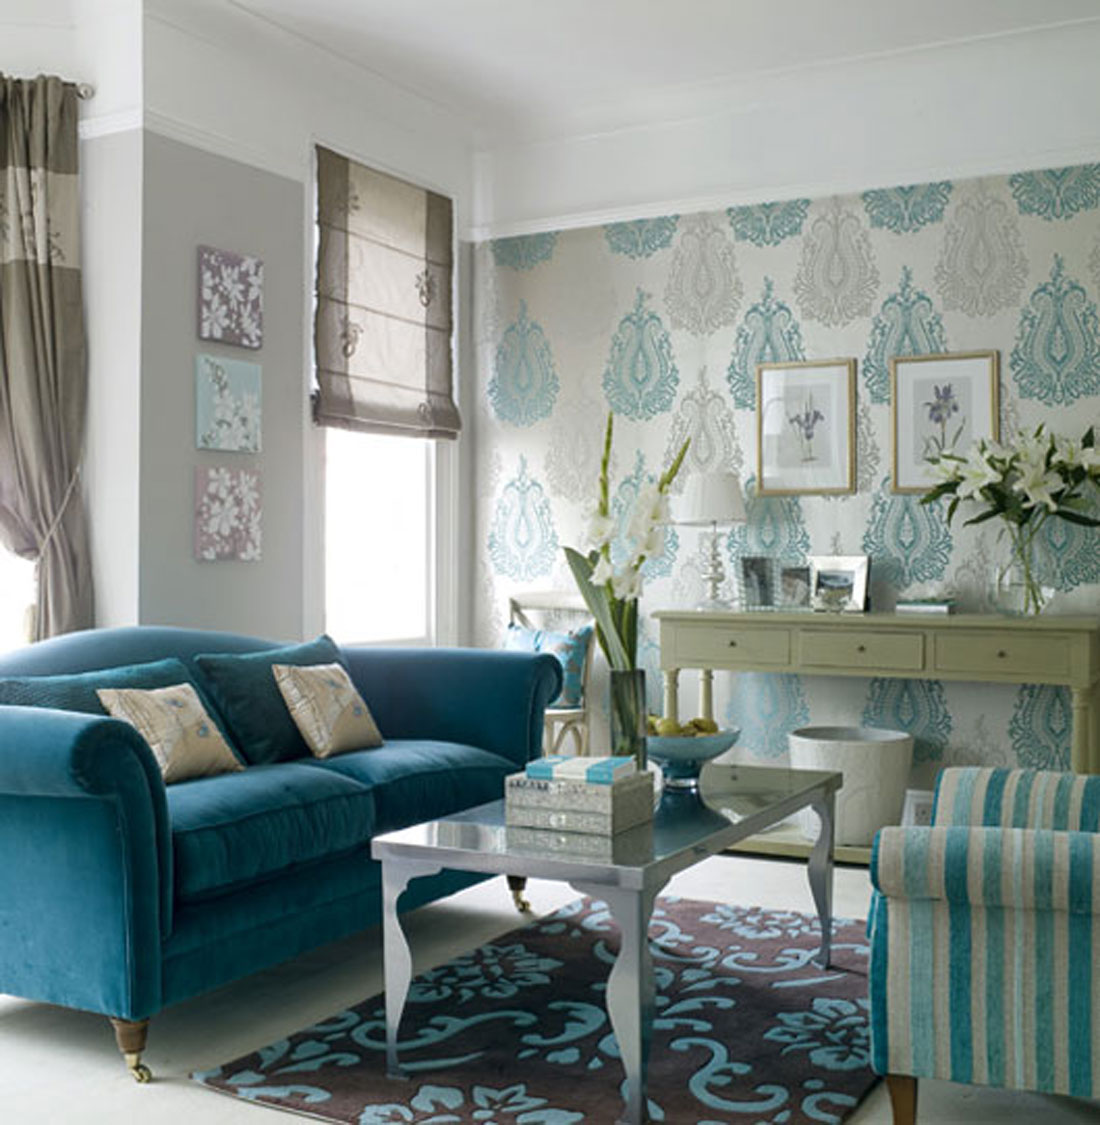 Living Room Ideas: The Texture Of Teal And Turquoise